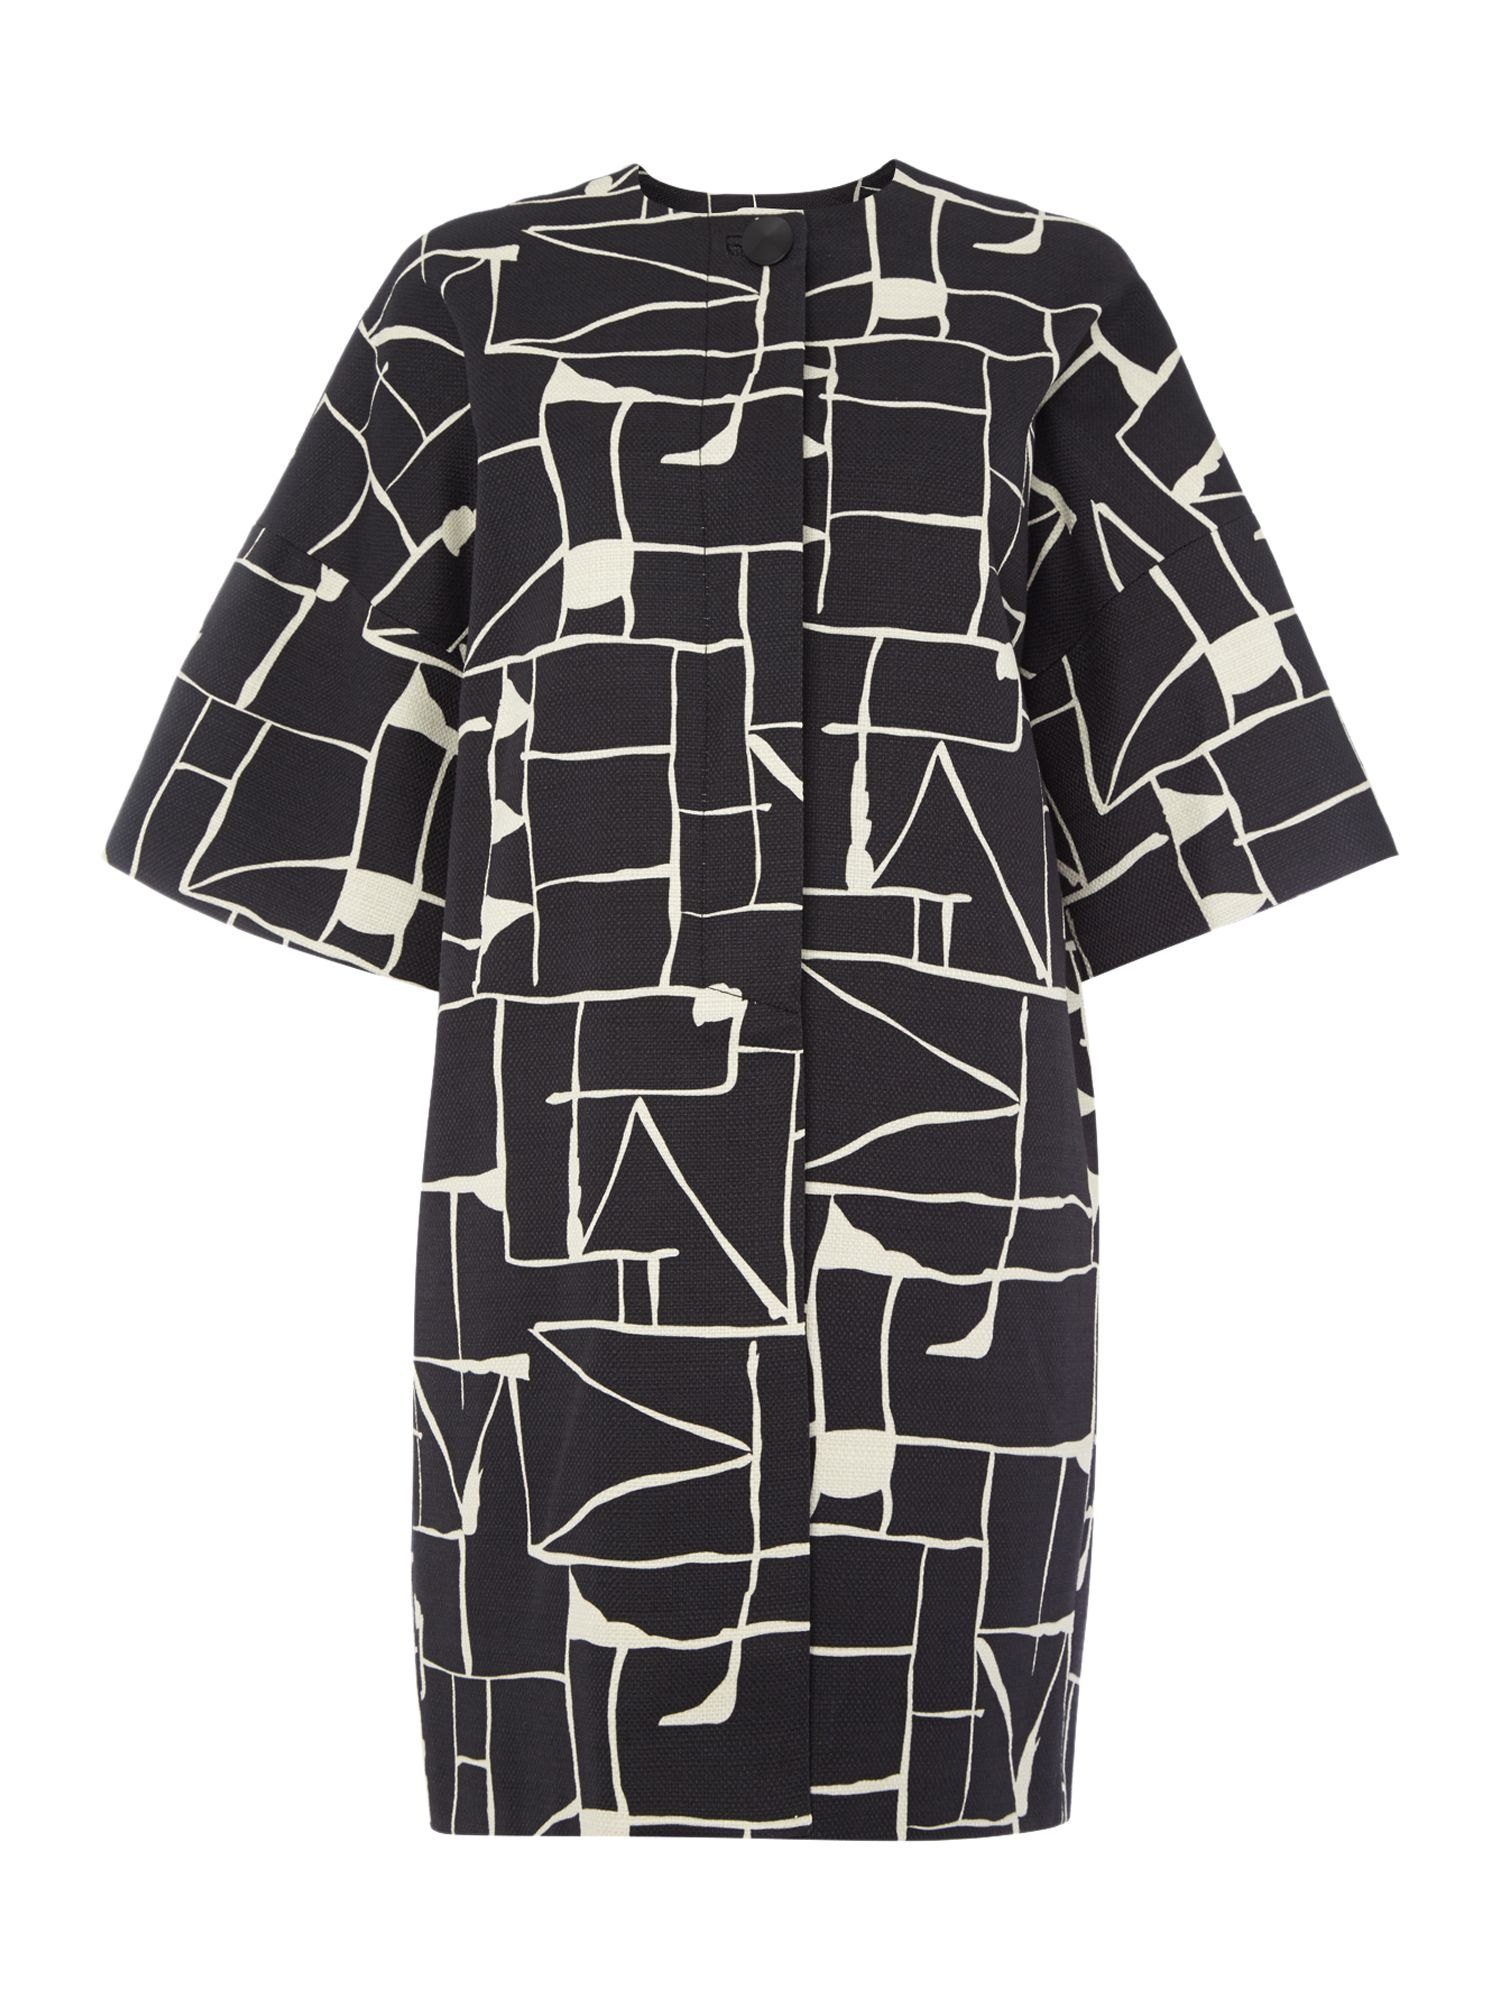 Tara Jarmon Graphic print collarless coat, Black